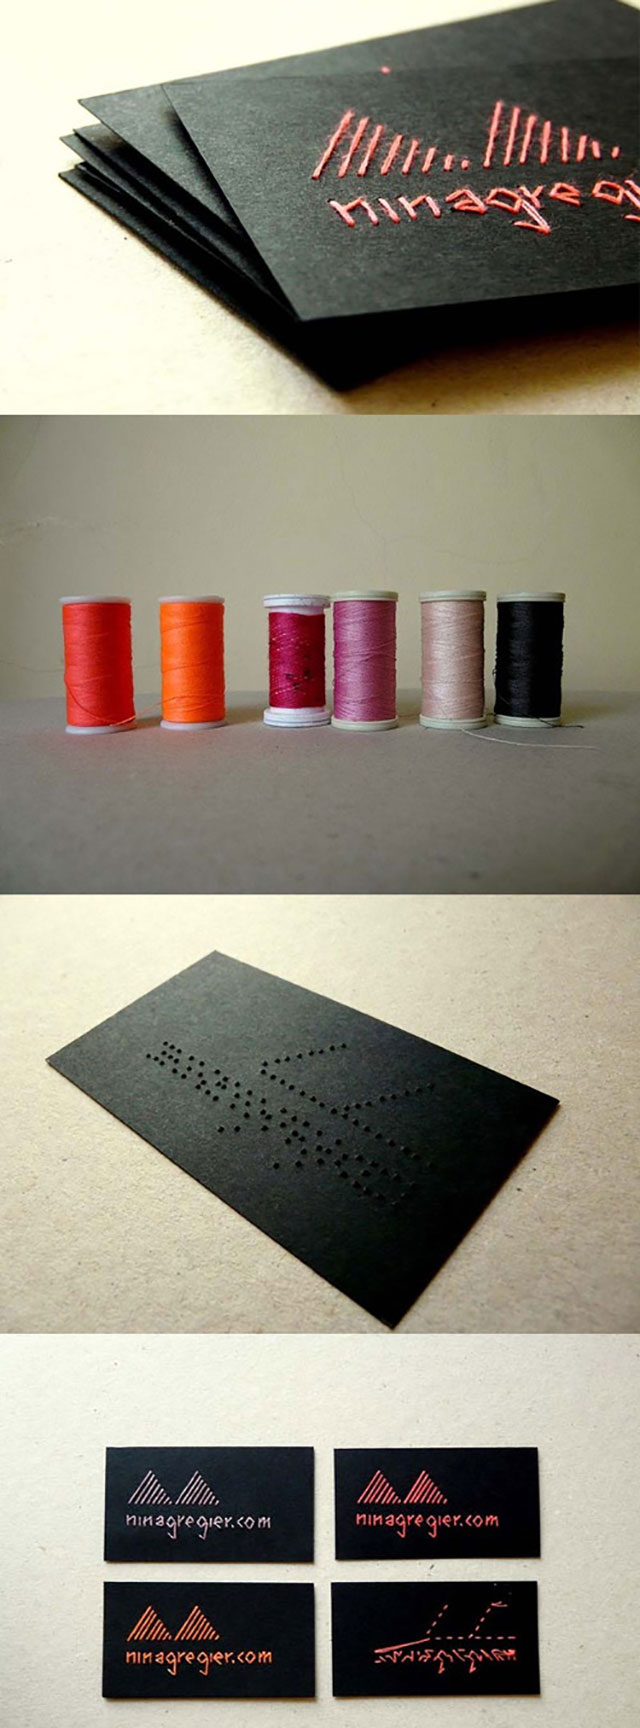 255 of the most creative business cards ever 111 blew my